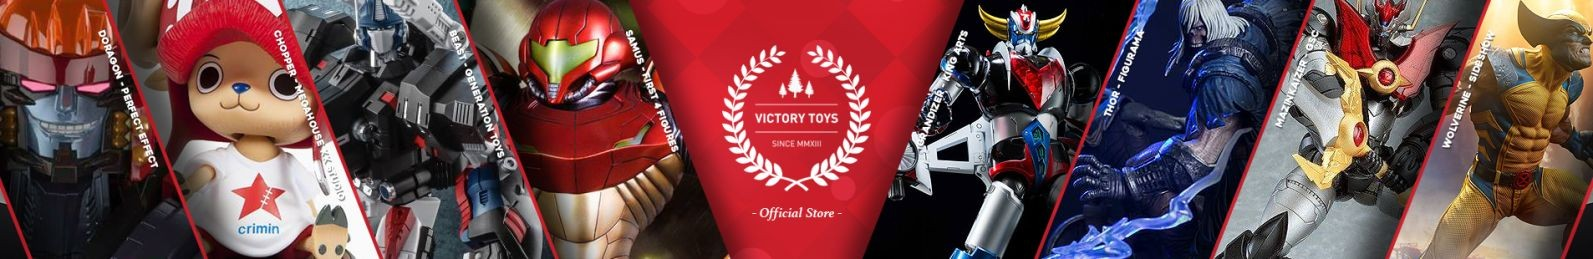 Victory Toys